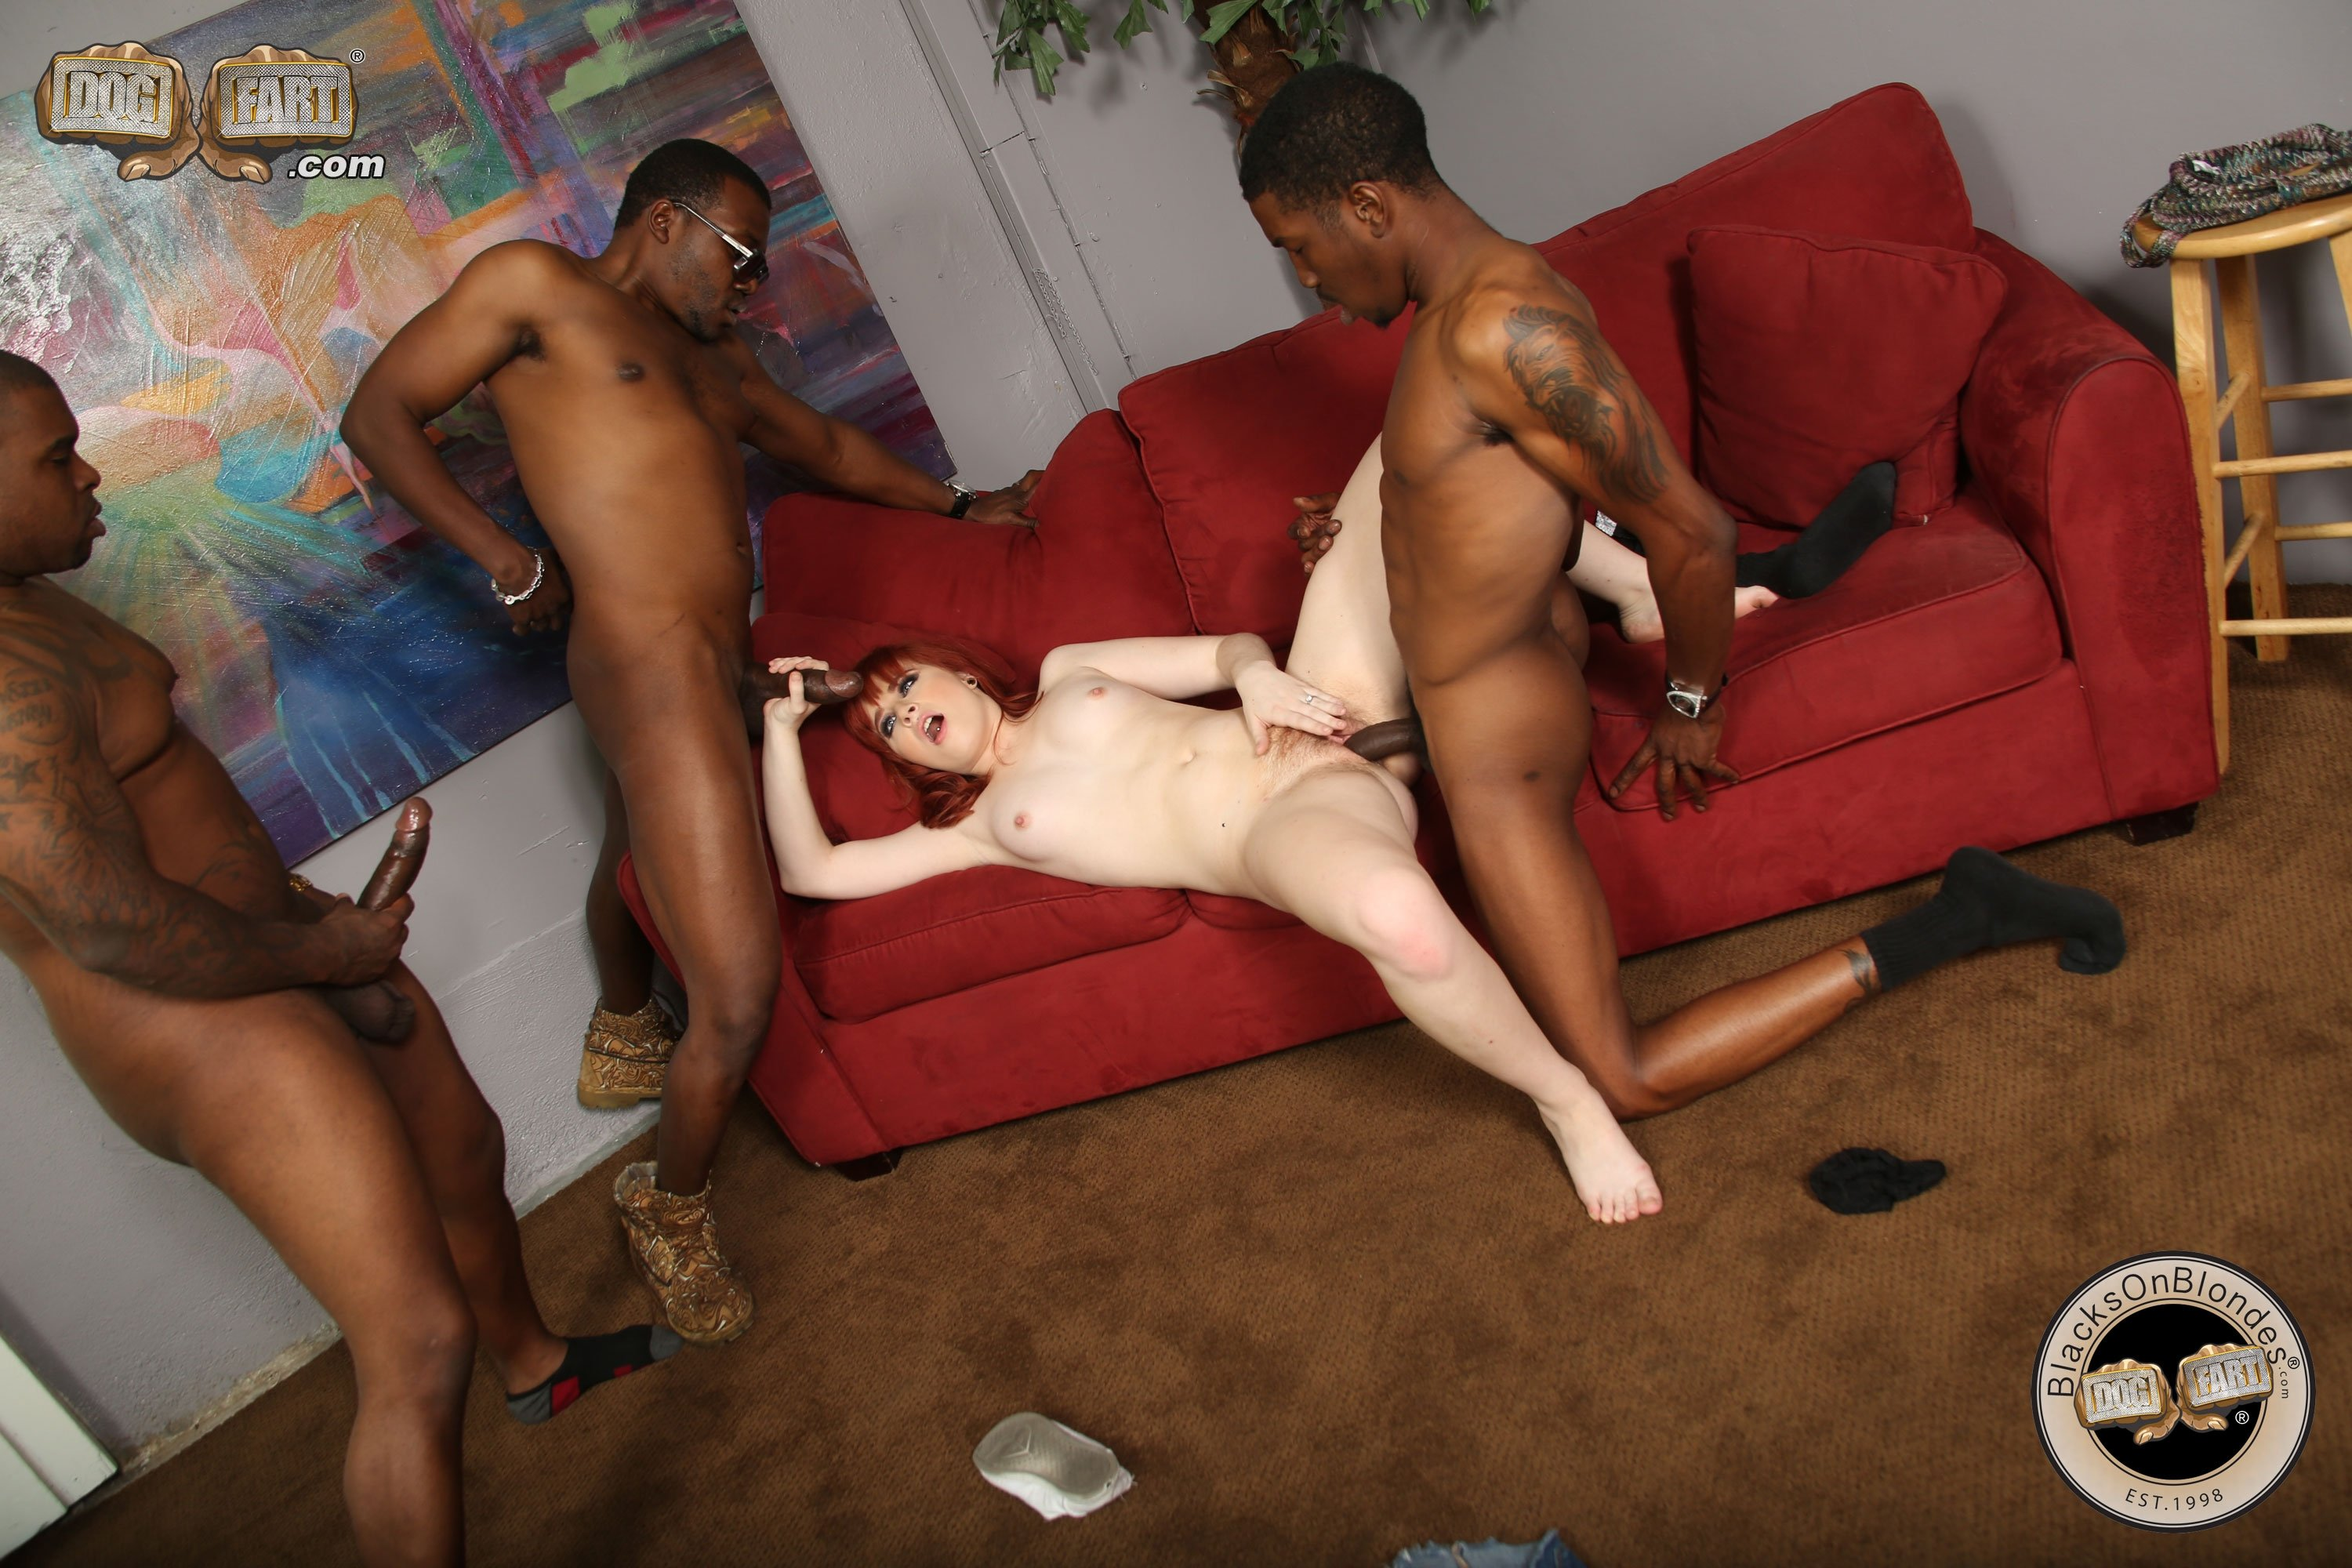 Young libertines anal #1